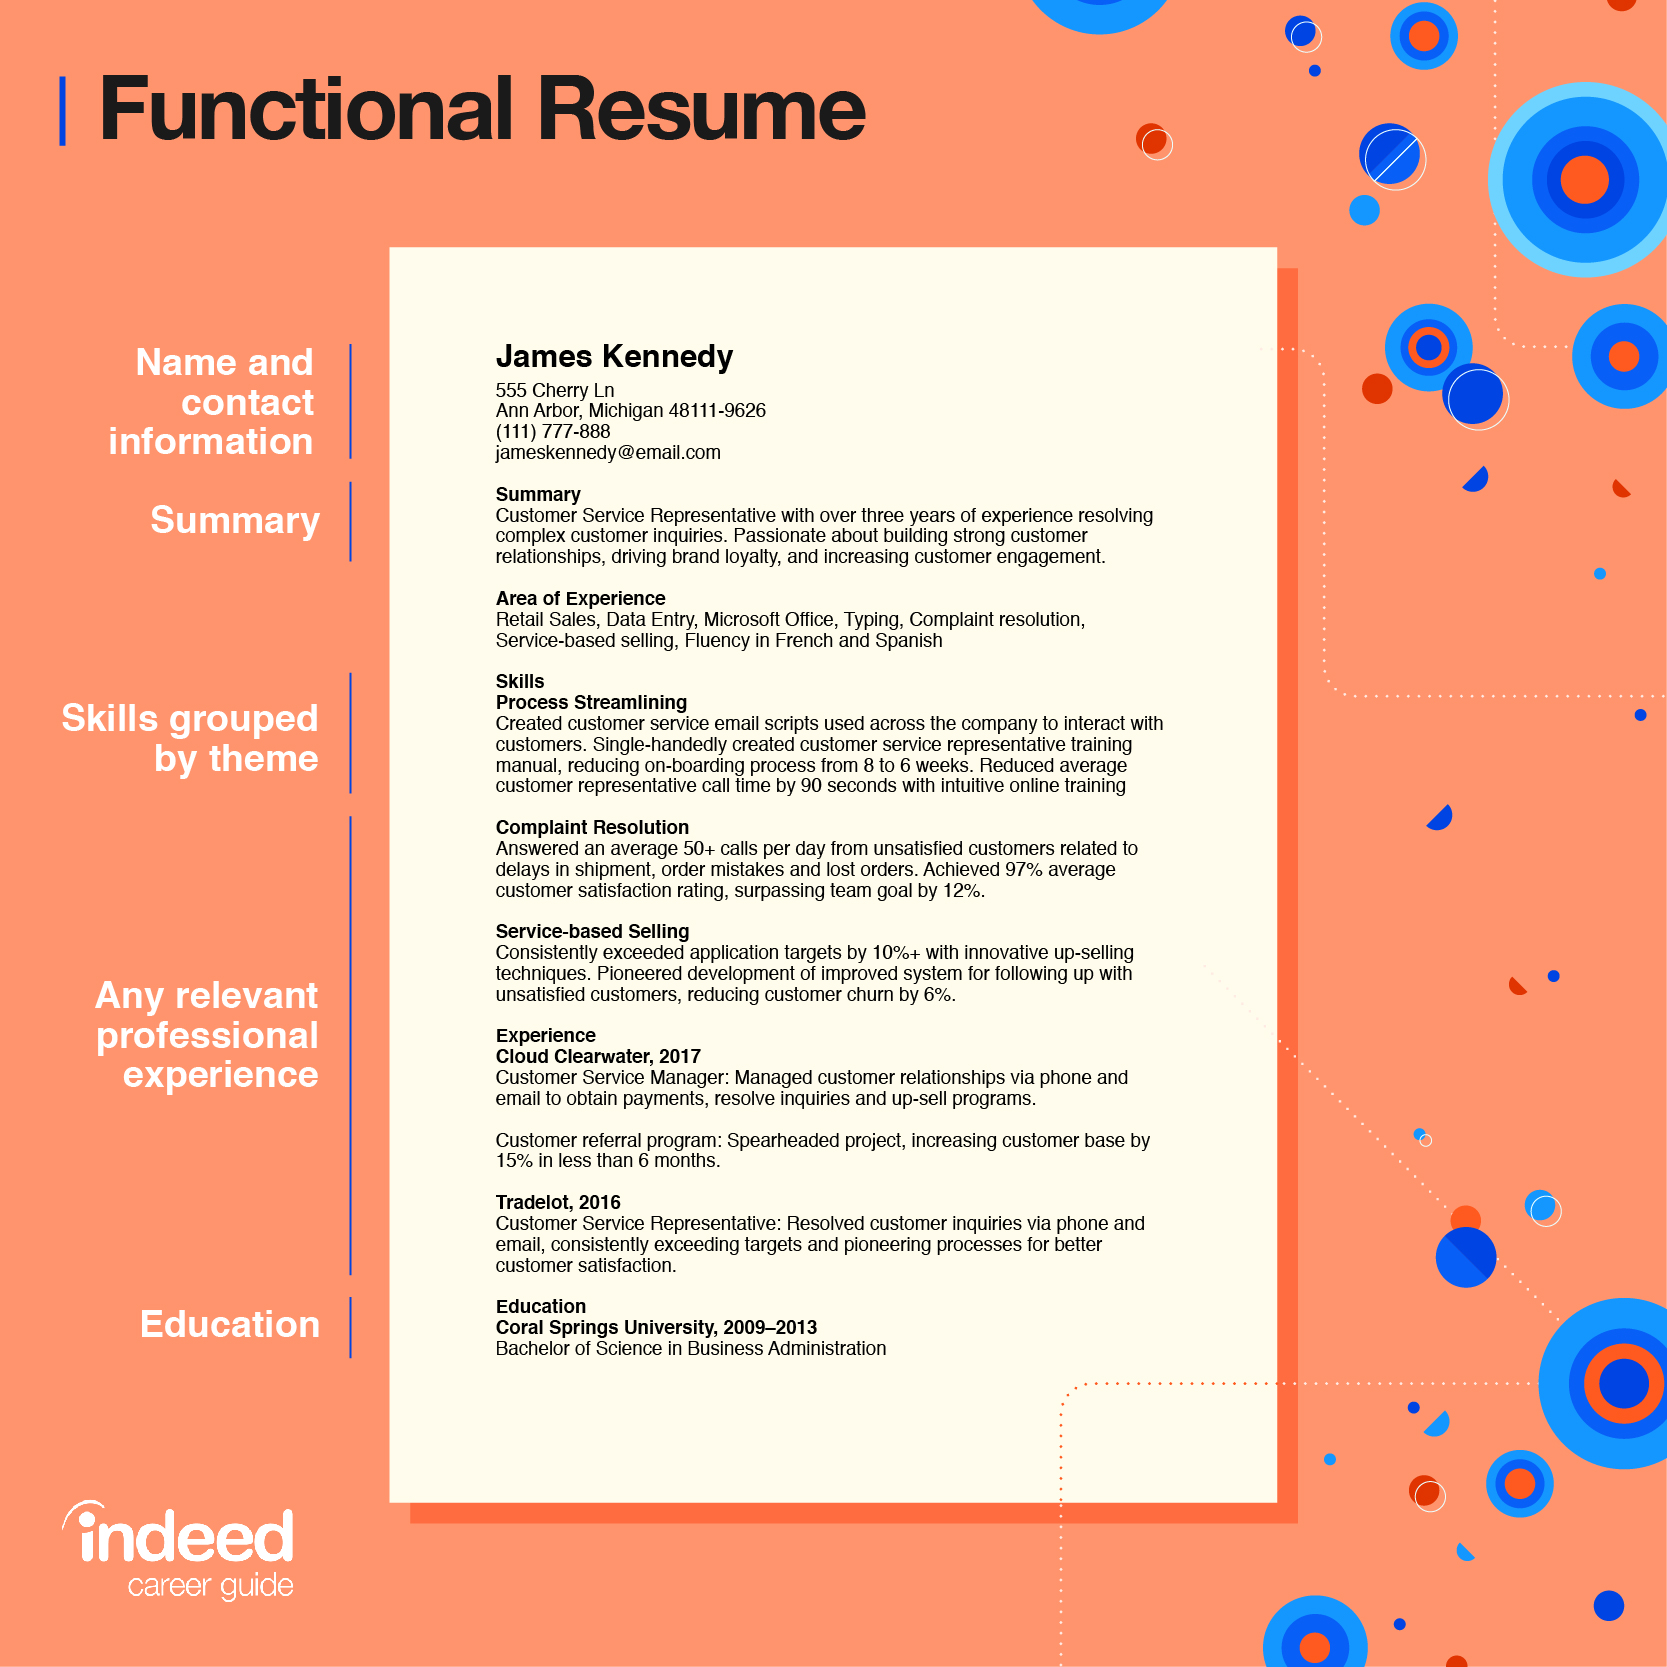 functional resume tips and examples